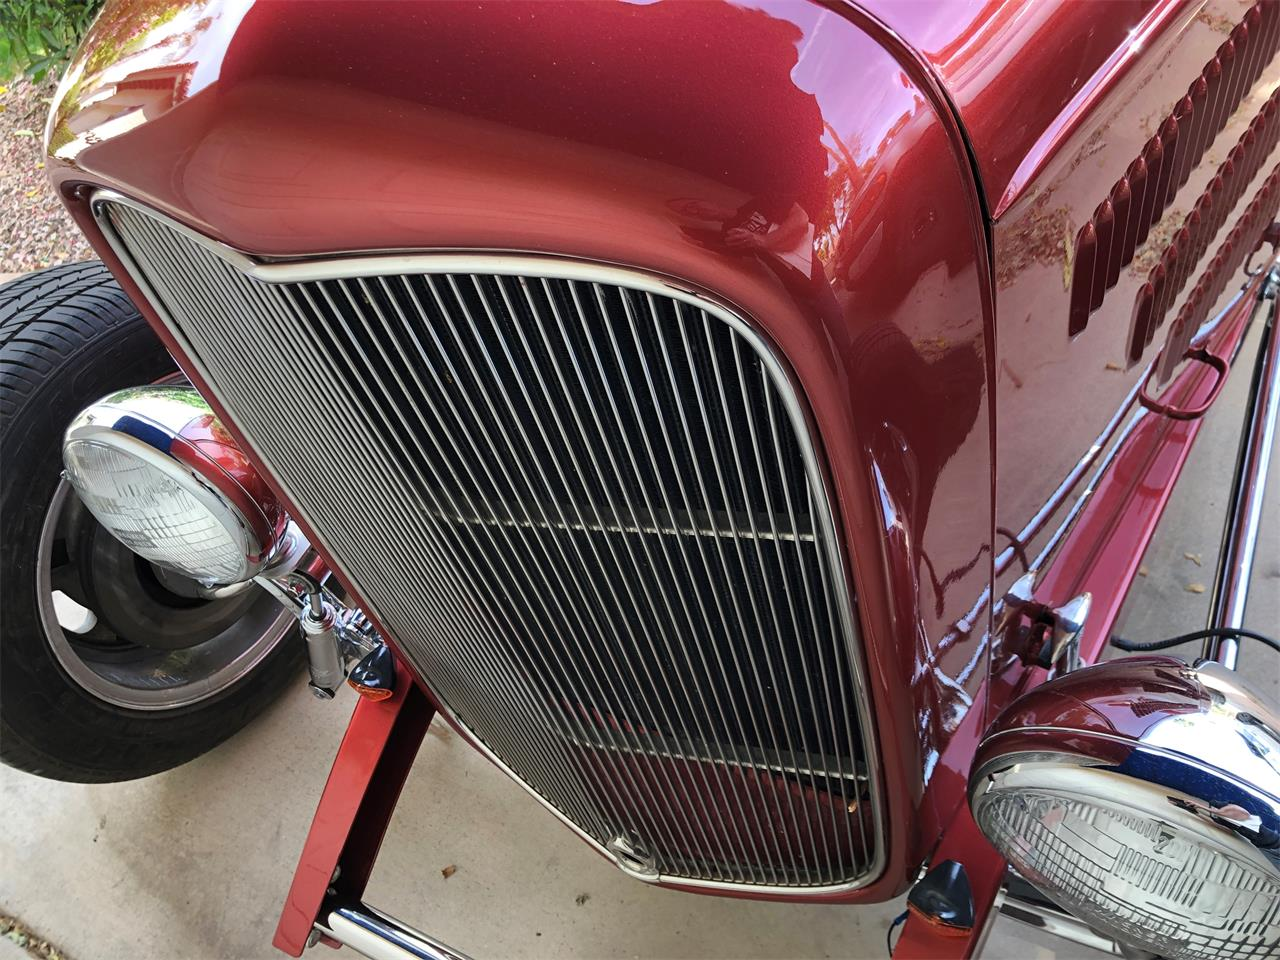 Large Picture of Classic 1932 Ford Roadster located in Arizona - $27,900.00 Offered by a Private Seller - OR7Y